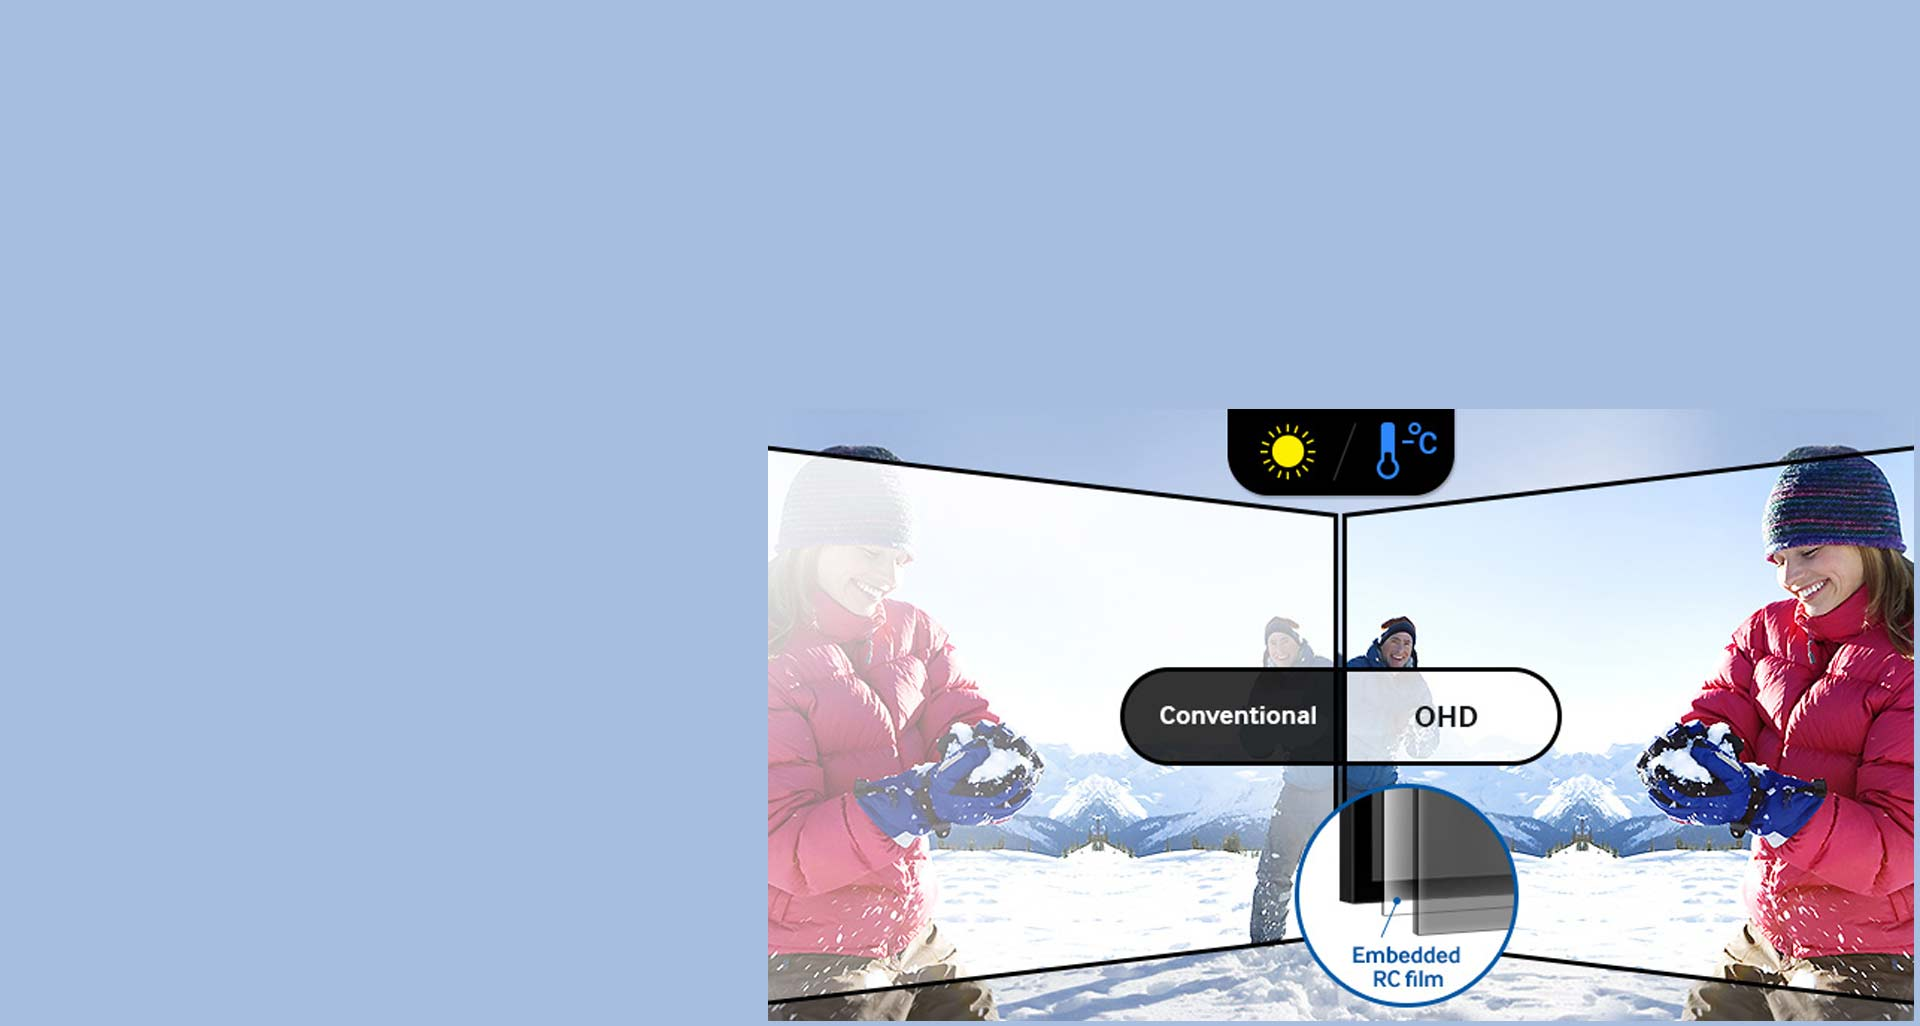 samsung 2 increase messaging visibility with magic protection glass - مانیتور صنعتی سامسونگ برای فضای باز 55 اینچ Samsung Smart Signage Outdoor OH55D